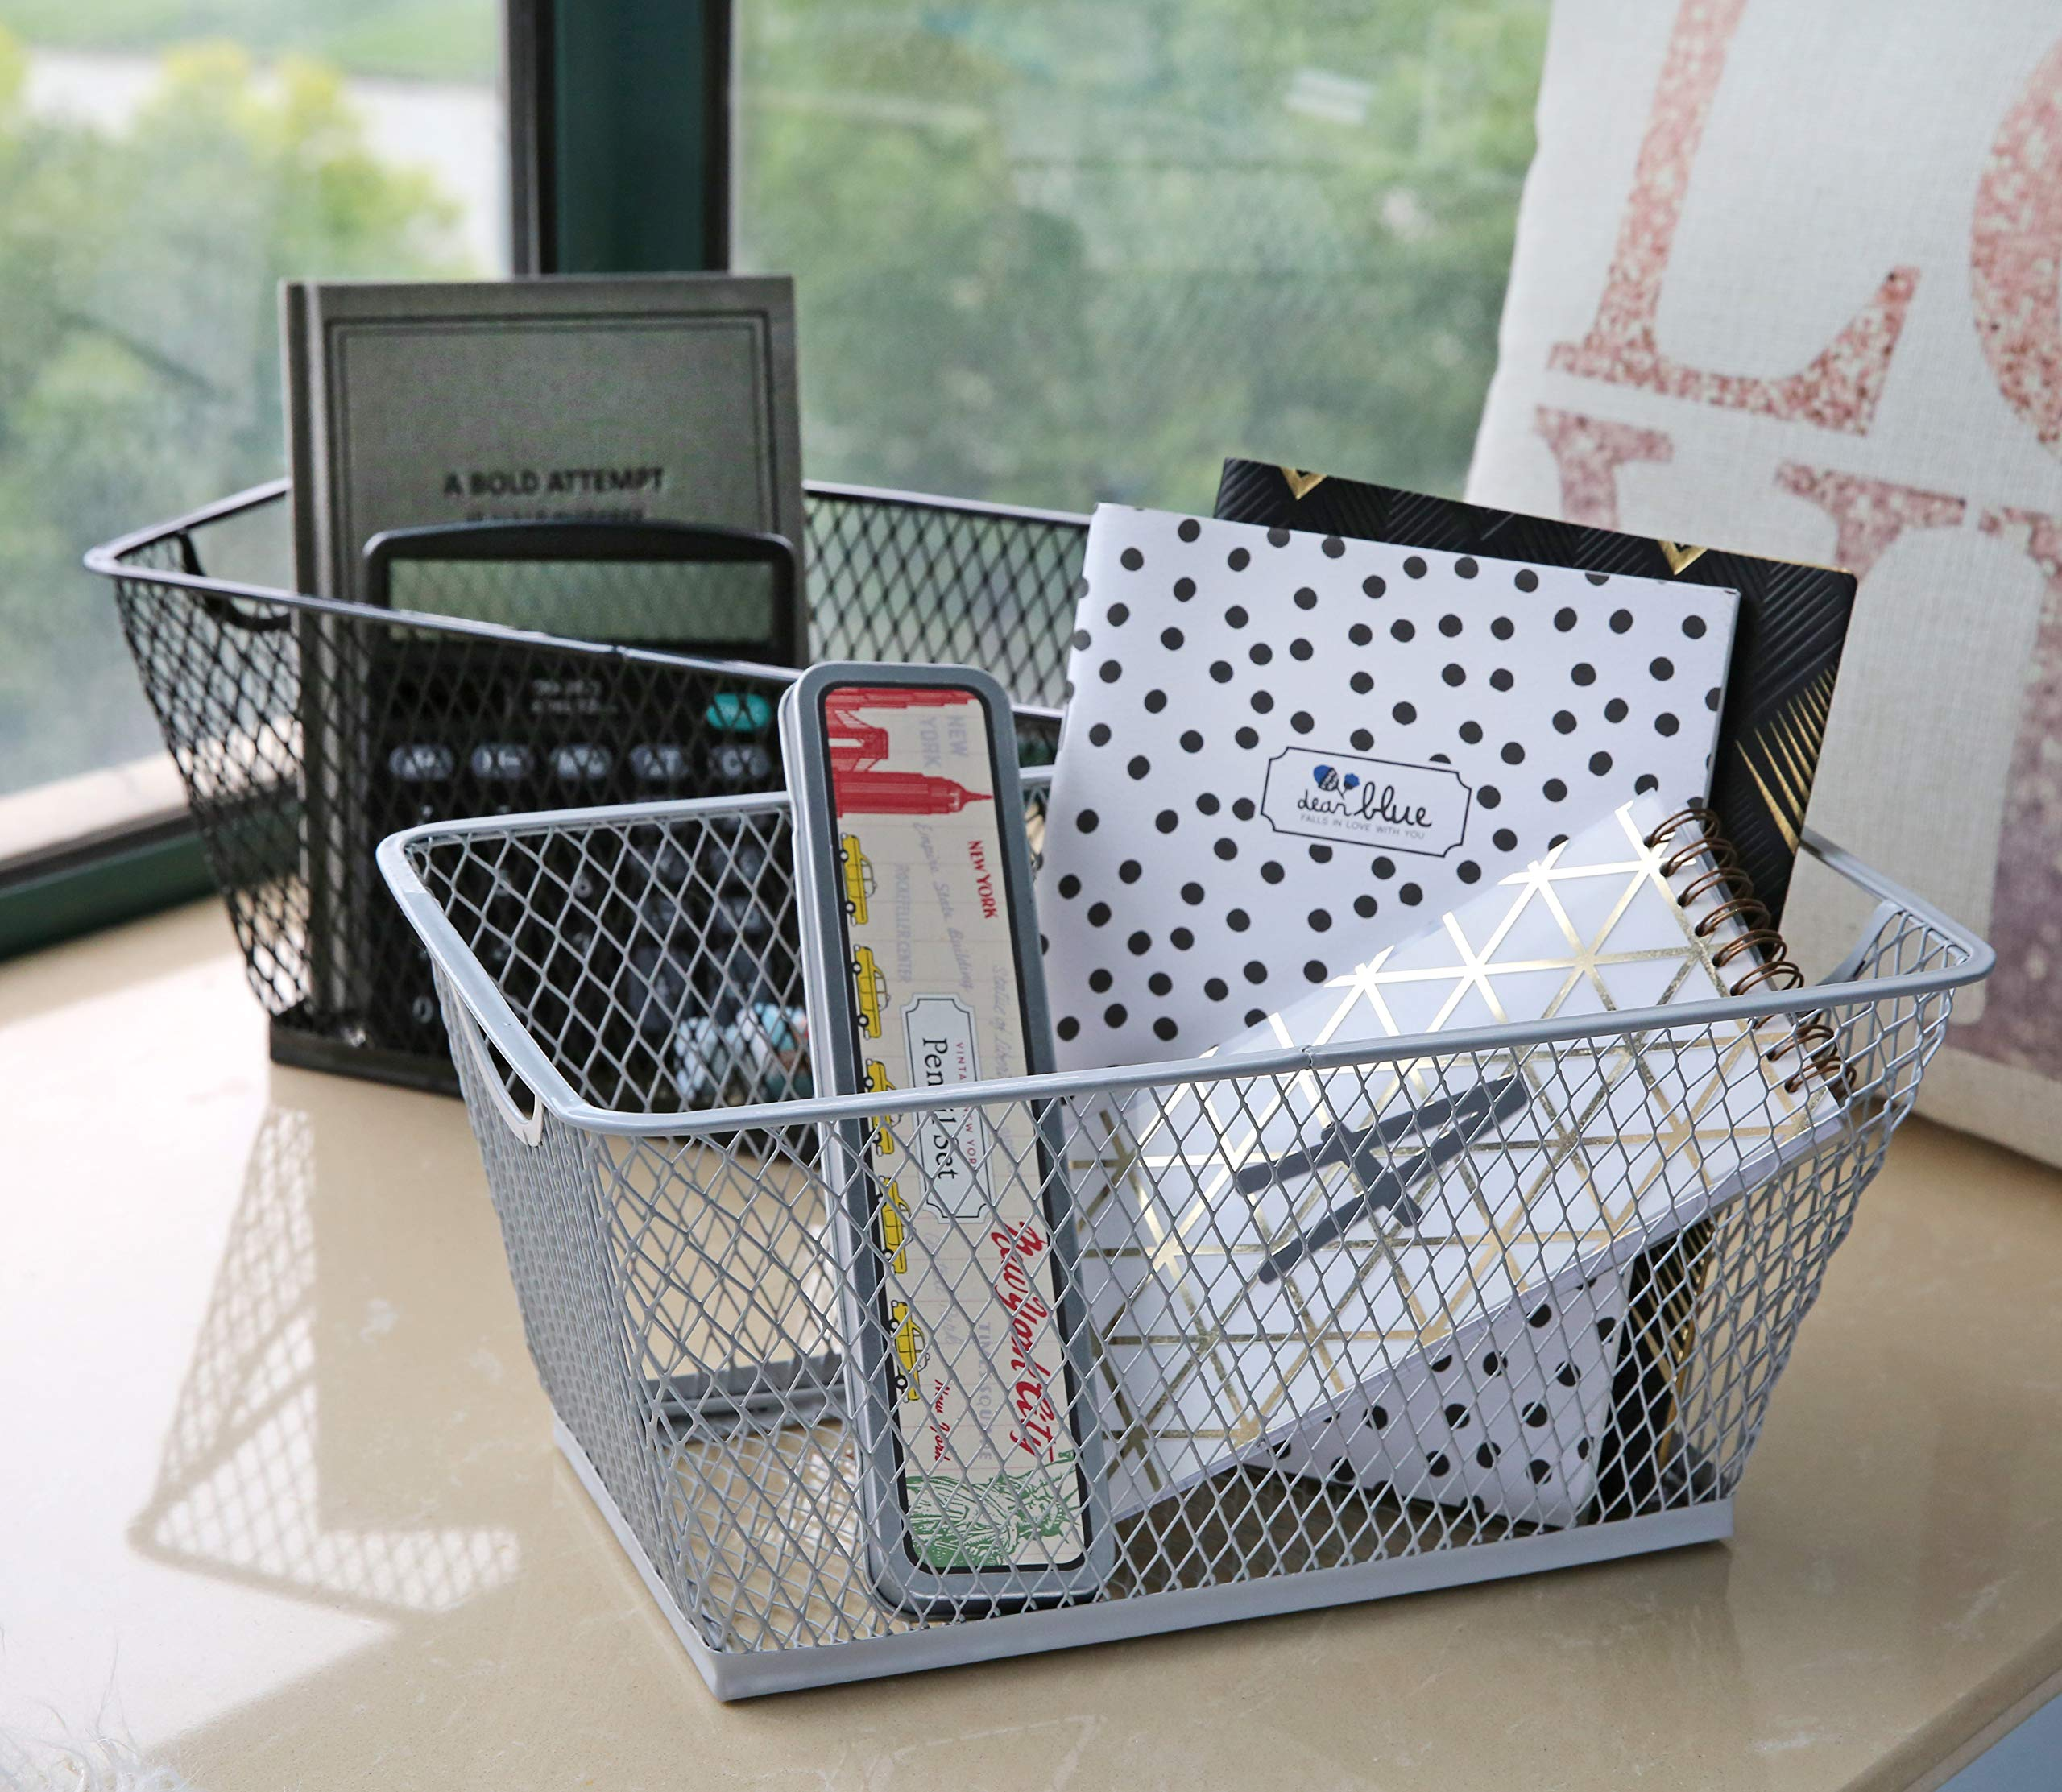 SLPR Office Desktop Organizer Wire Basket (Set of 2, White) | Classroom Craft Room Kitchen Pantry Garage Desk Stackable Metal Tapered Storage Bin by SLPR (Image #2)